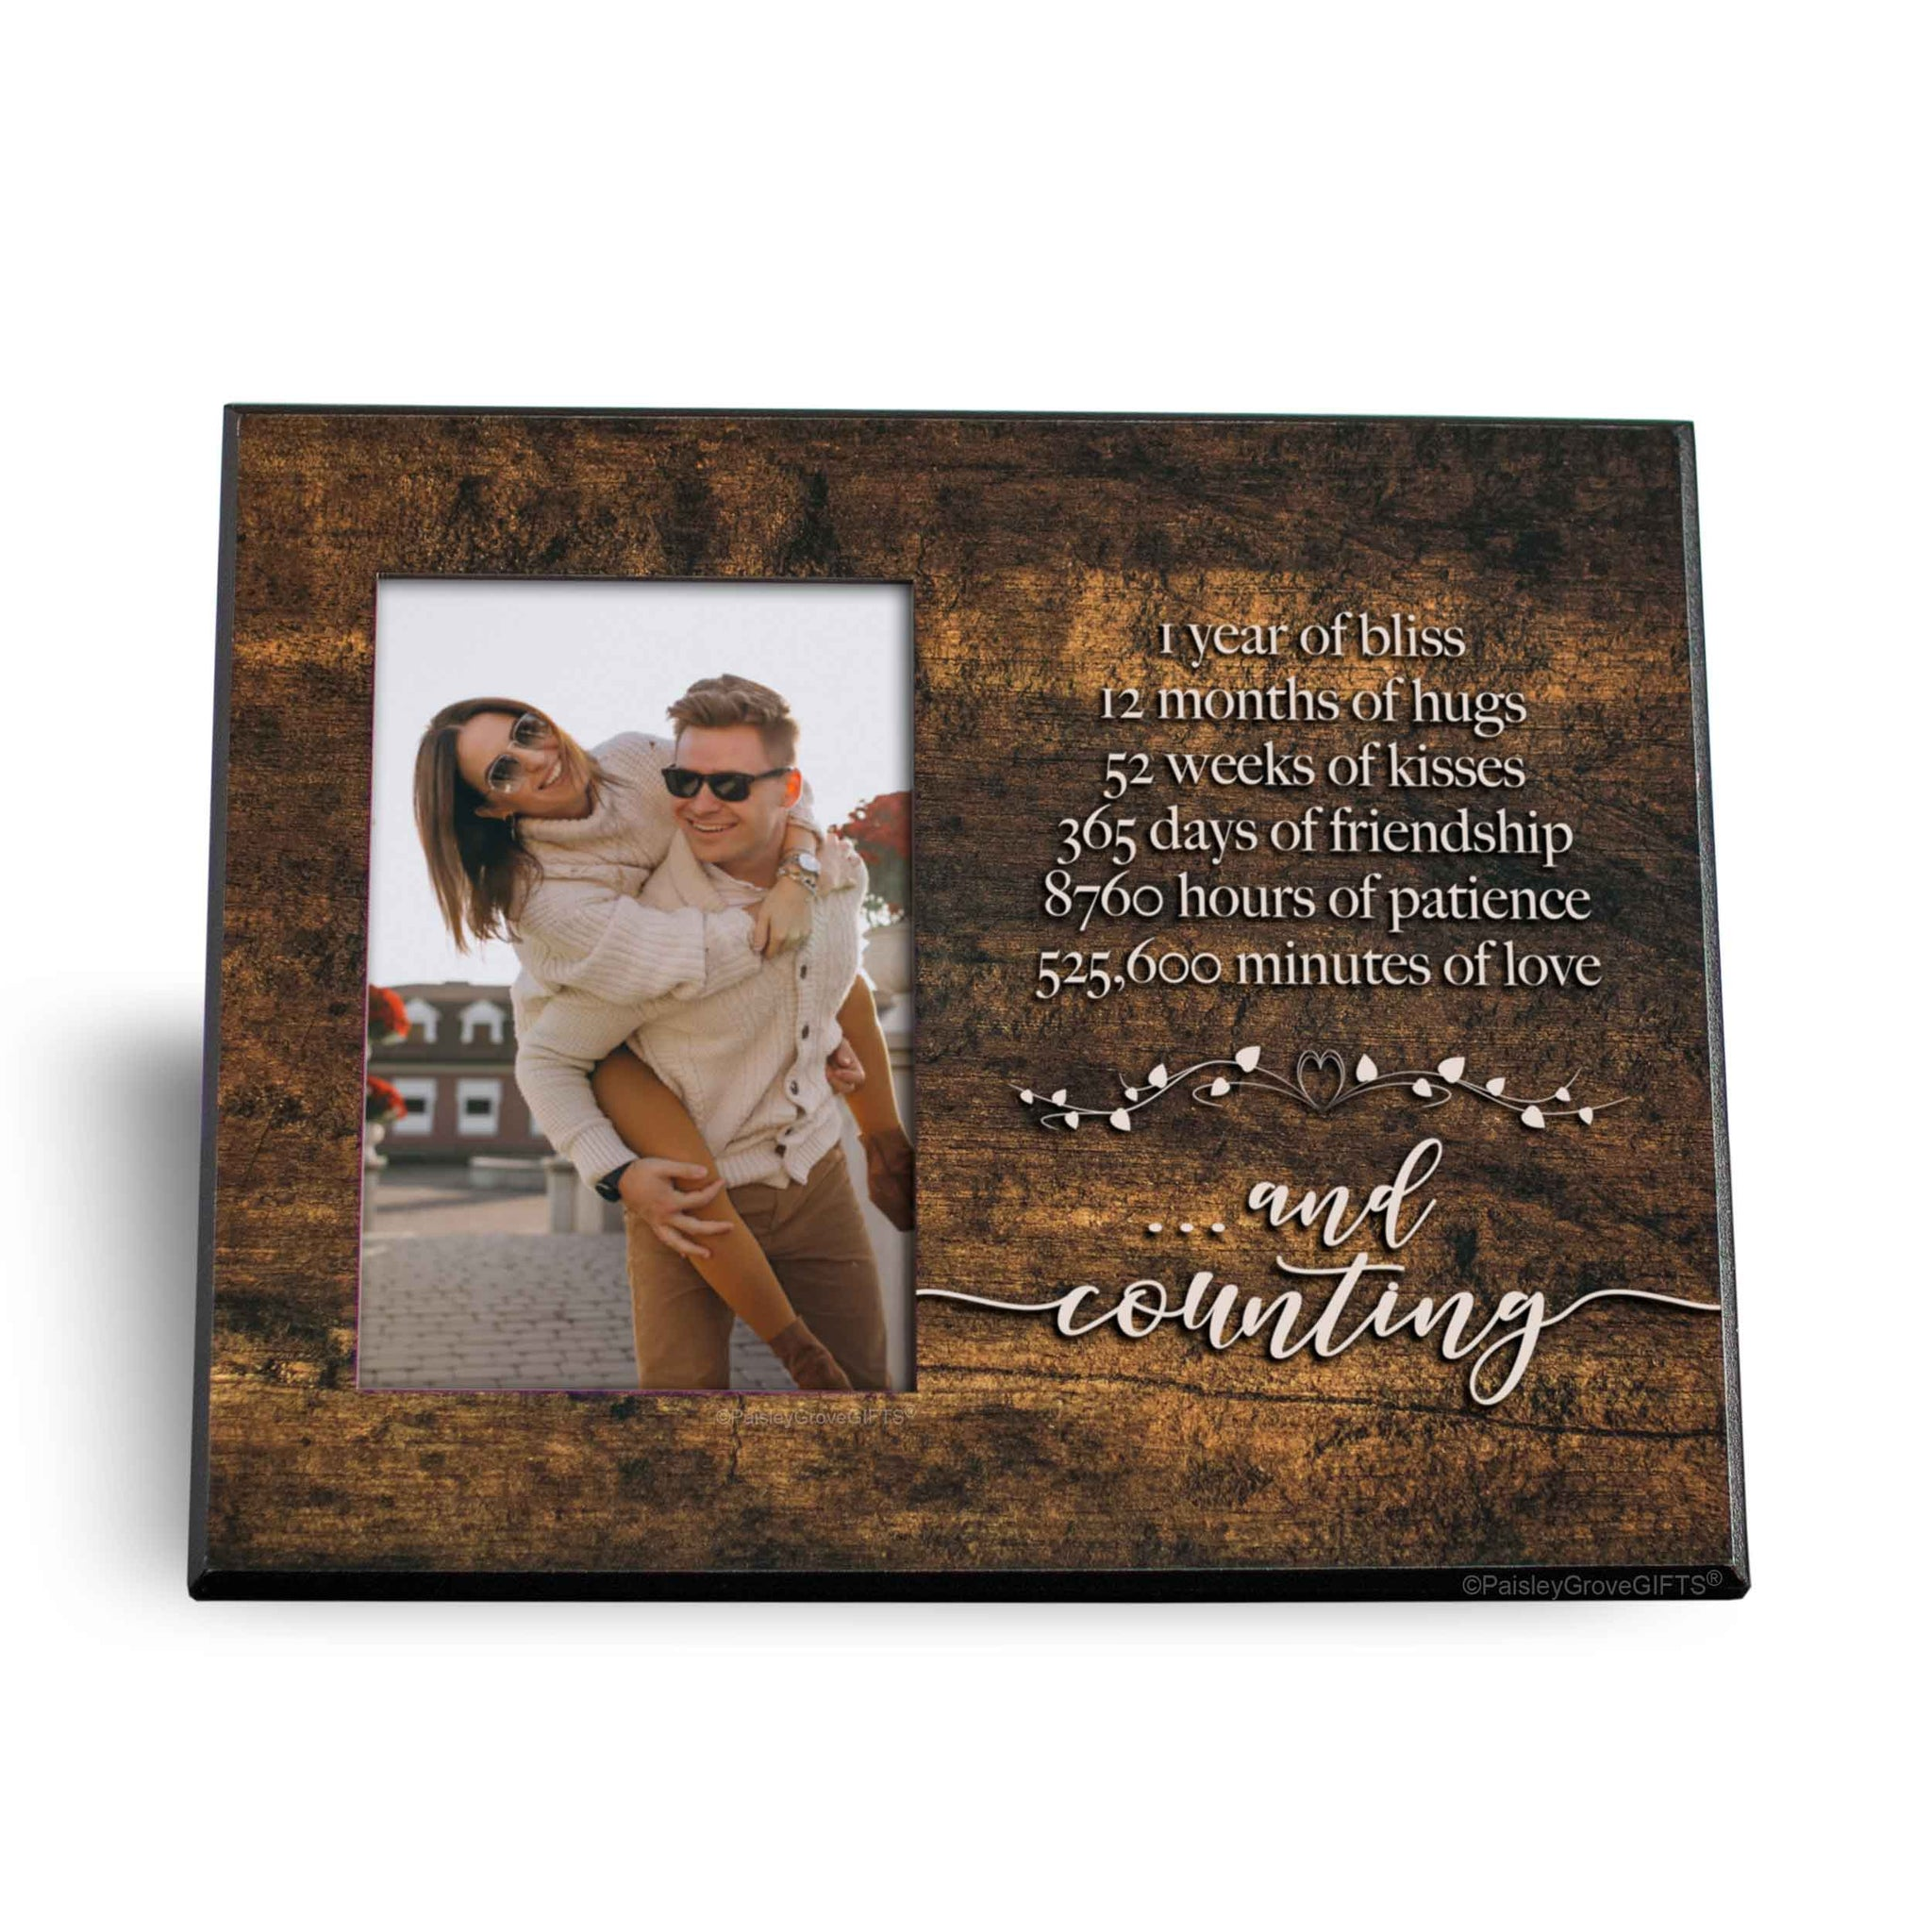 CopyrightPaisleyGroveGIFTS S245a One Year and Counting Anniversary Gift Frame for boyfriend girlfriend wife or husband